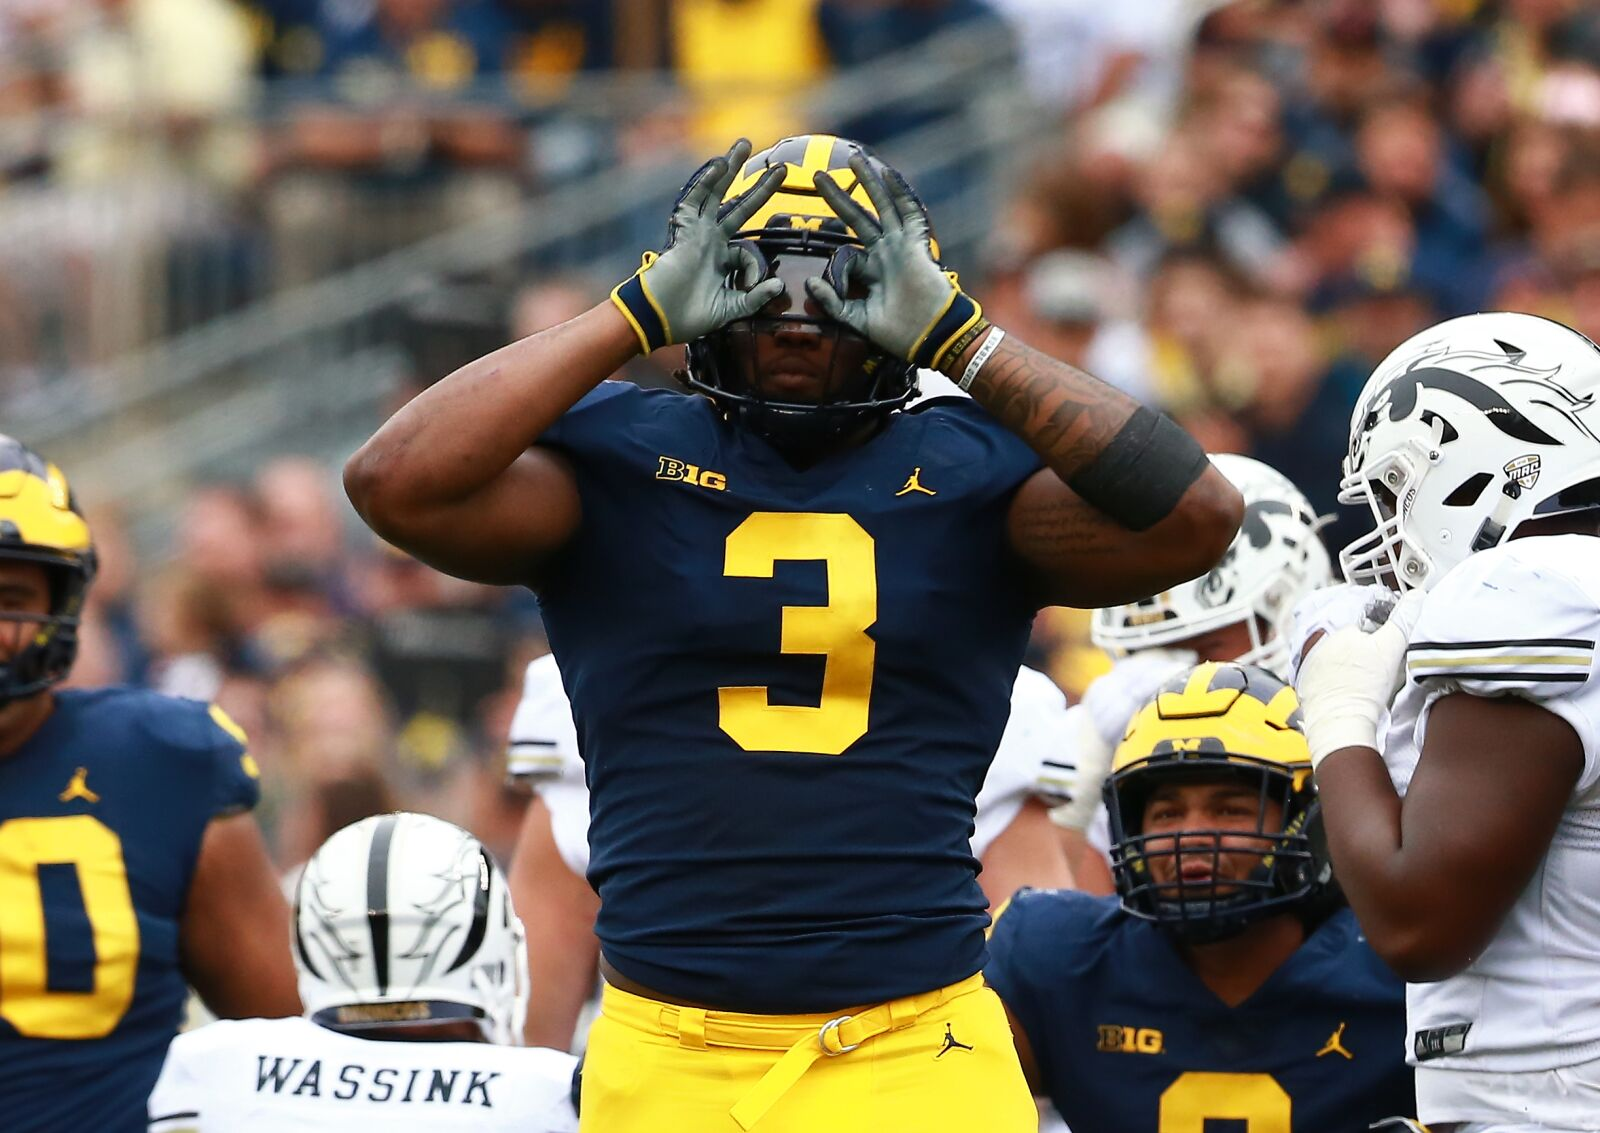 2019 NFL Draft: How Rashan Gary's shoulder injury could impact 1st round